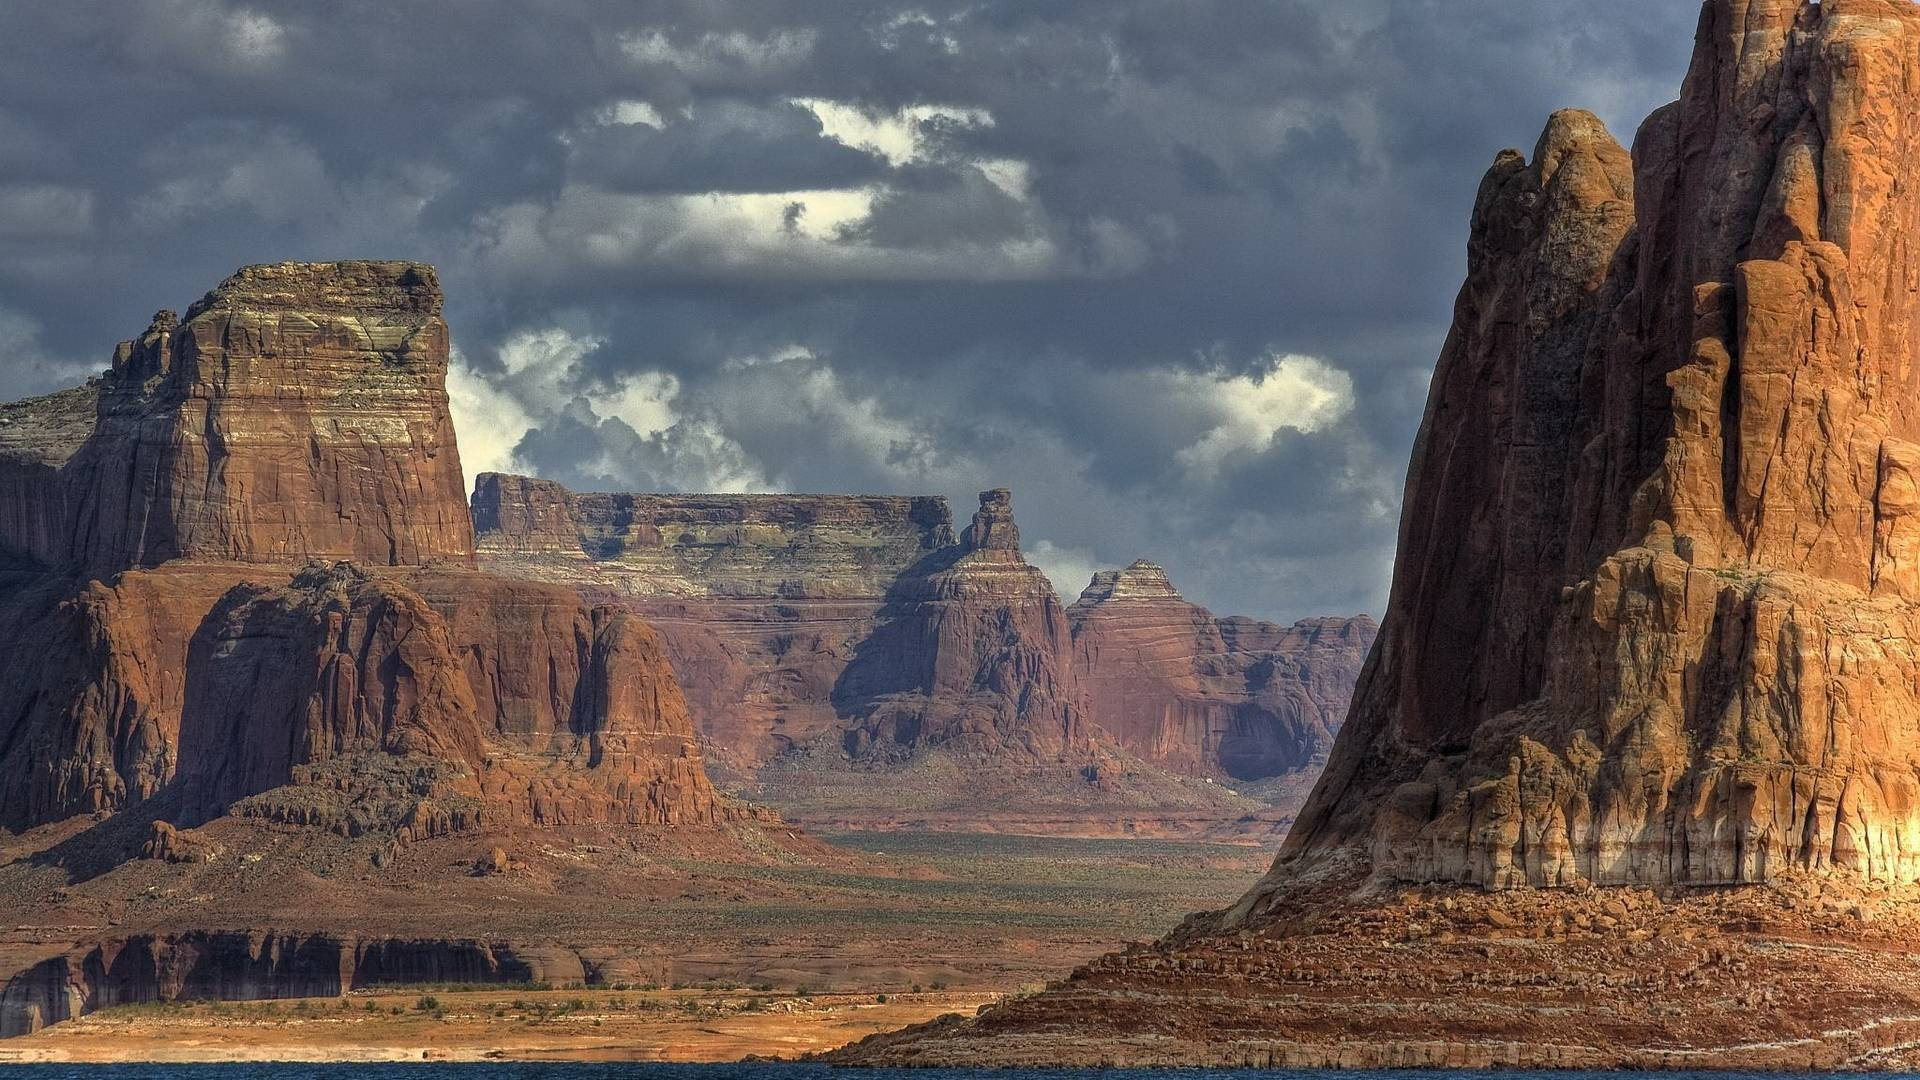 Desert Tag – Landscapes Fun Mountains Desert Nature Excelent Cool Picture  for HD 16:9